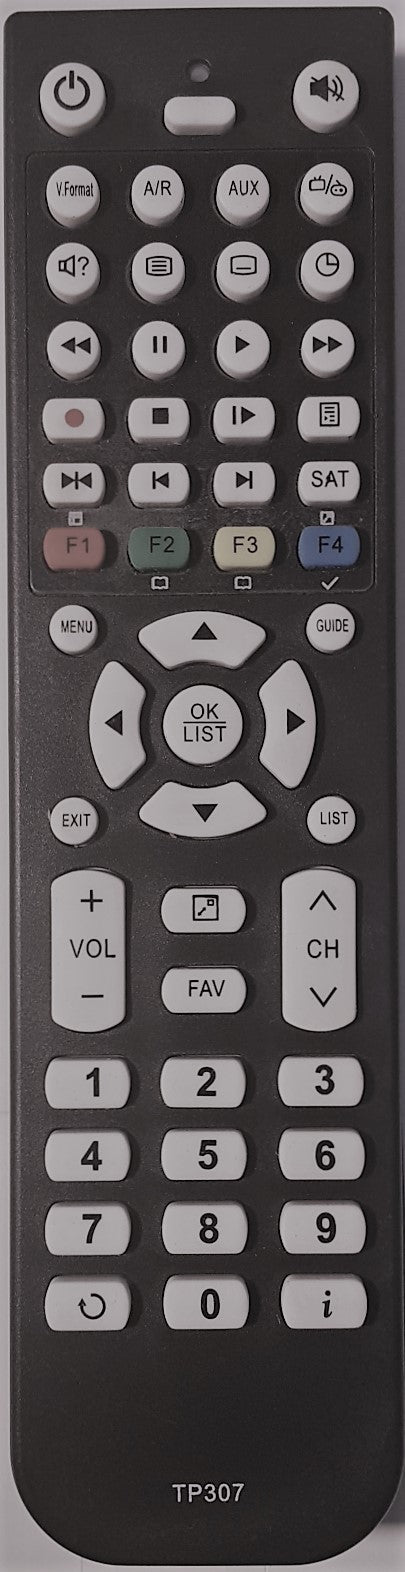 REPLACEMENT TOPFIELD REMOTE CONTROL TP807 - TRF7170 TRF-7170 DVR PVR RECORDER - Remote Control Warehouse